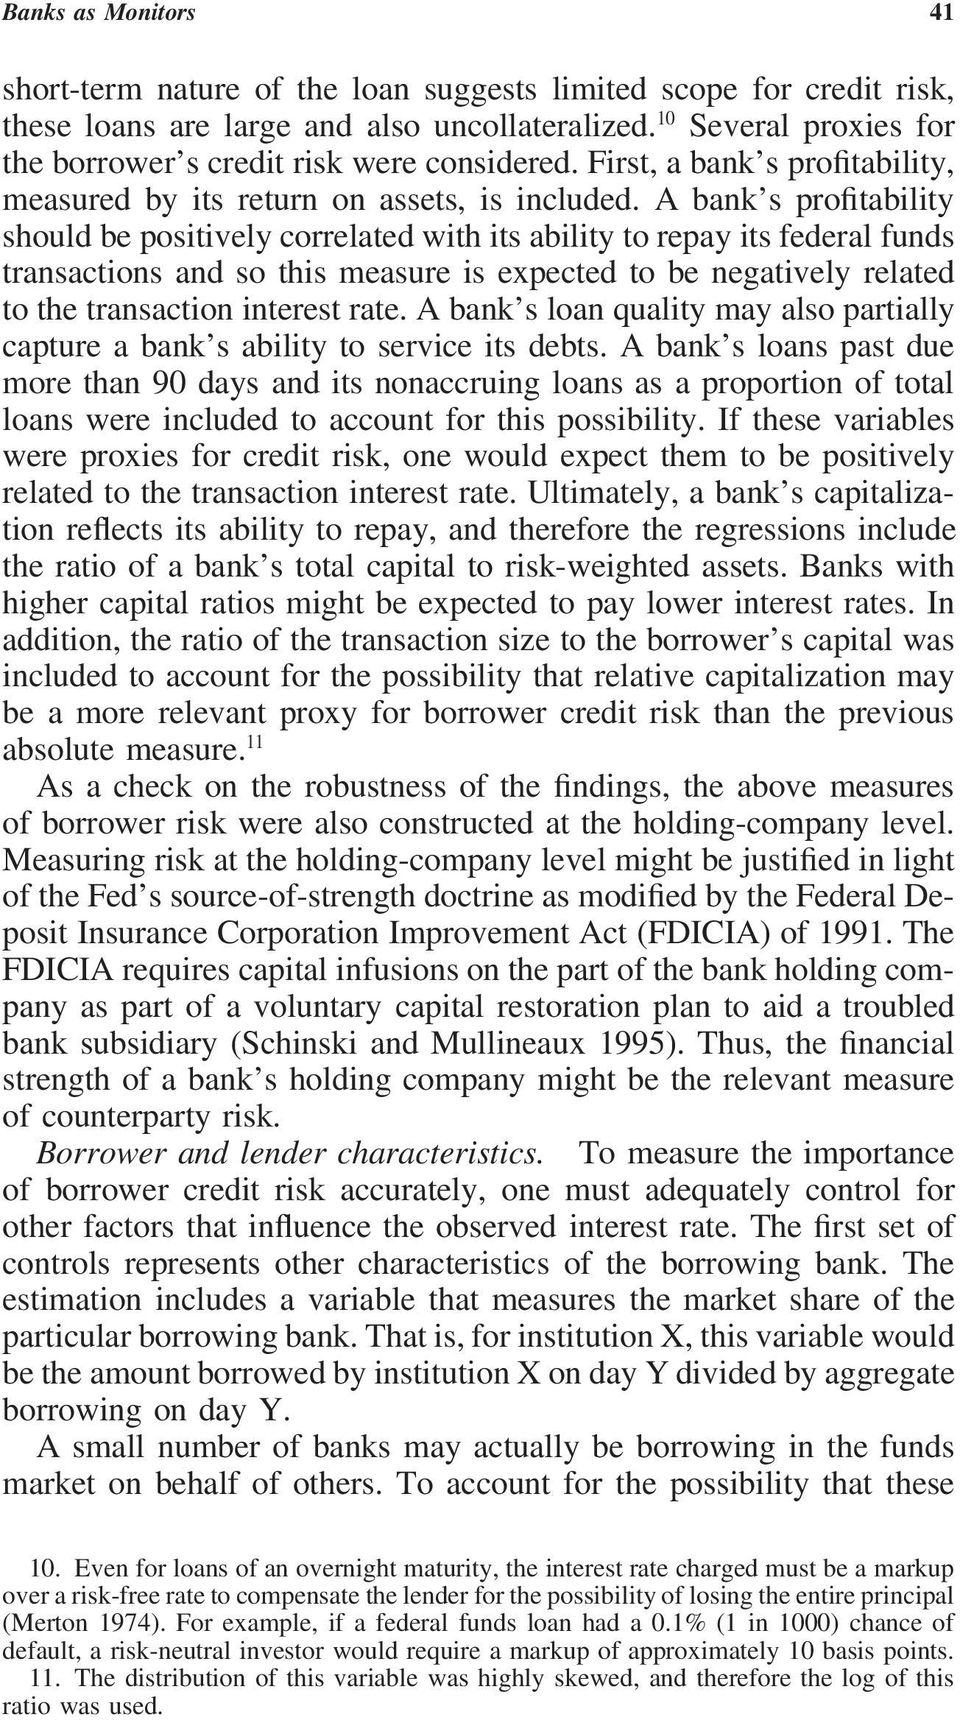 A bank s profitability should be positively correlated with its ability to repay its federal funds transactions and so this measure is expected to be negatively related to the transaction interest